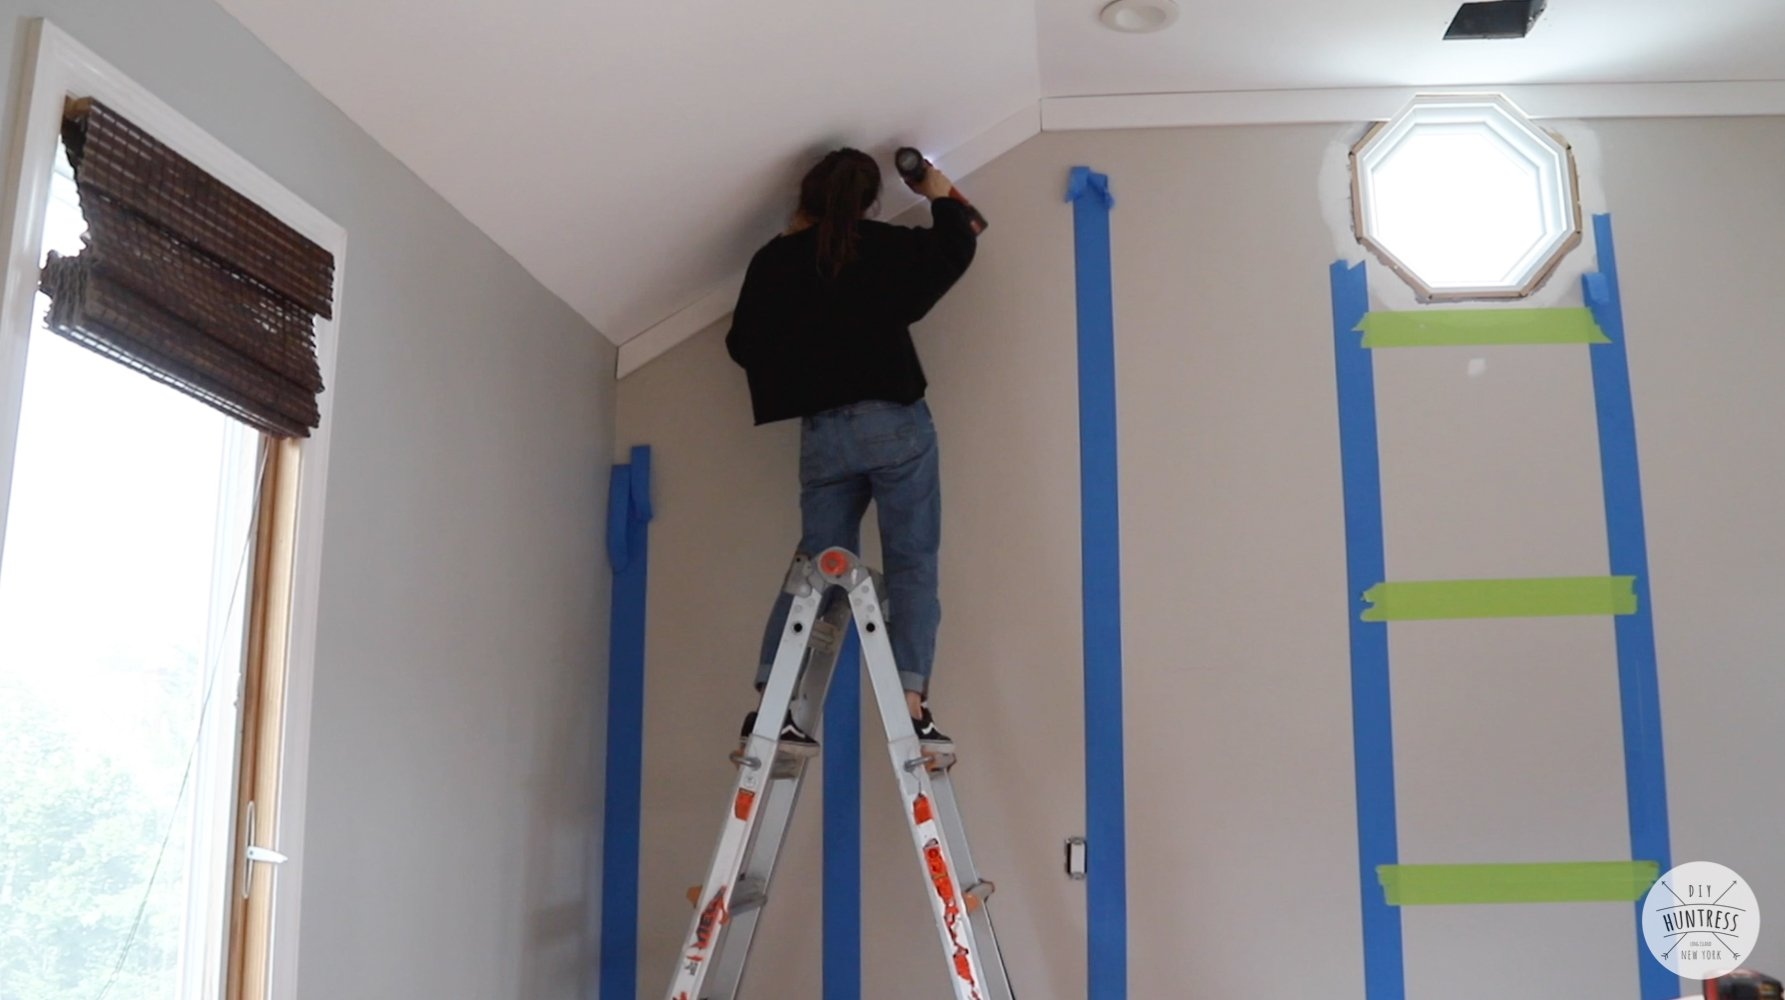 attaching boards to wall with nails